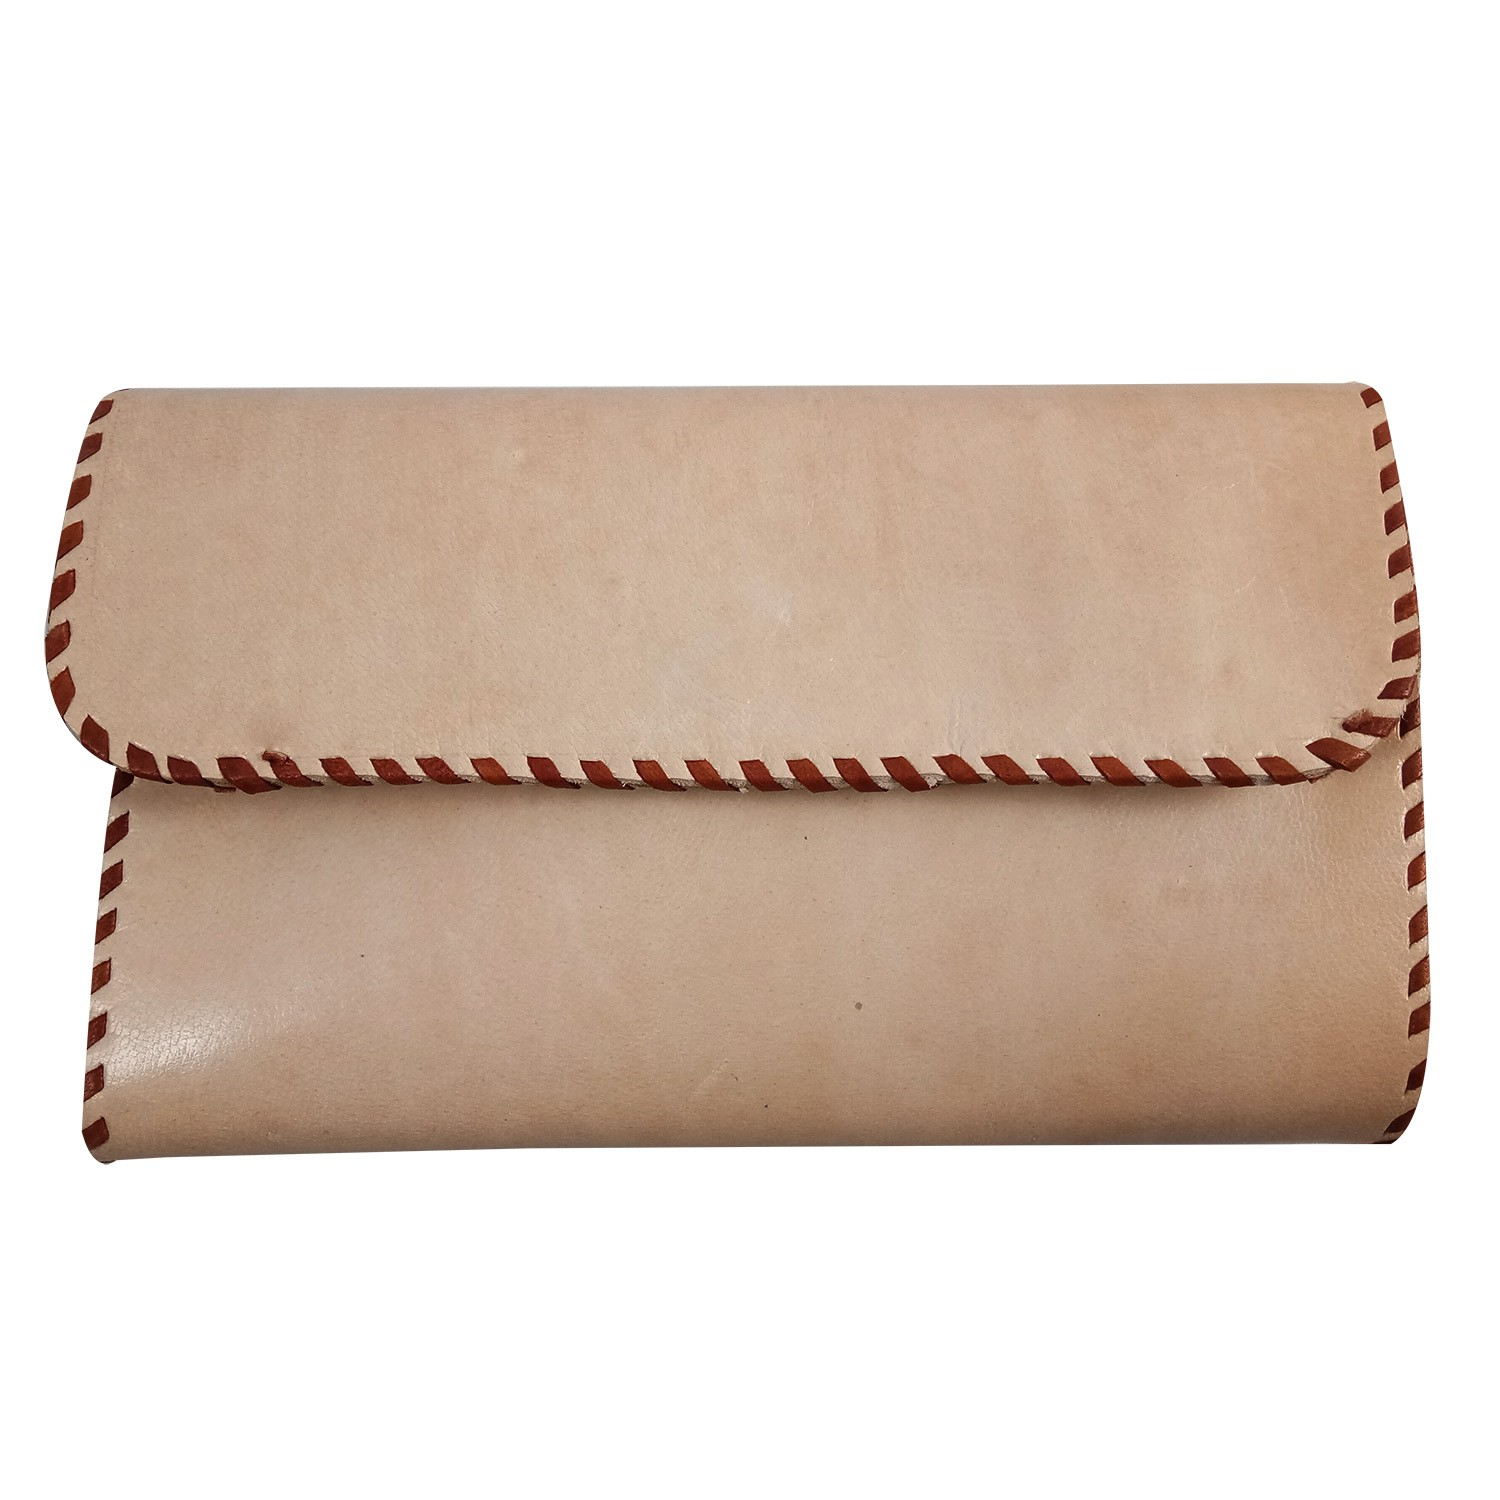 Handmade Stylish Designer Leather Embroidered Clutch Bag by Artisans from Rajasthan